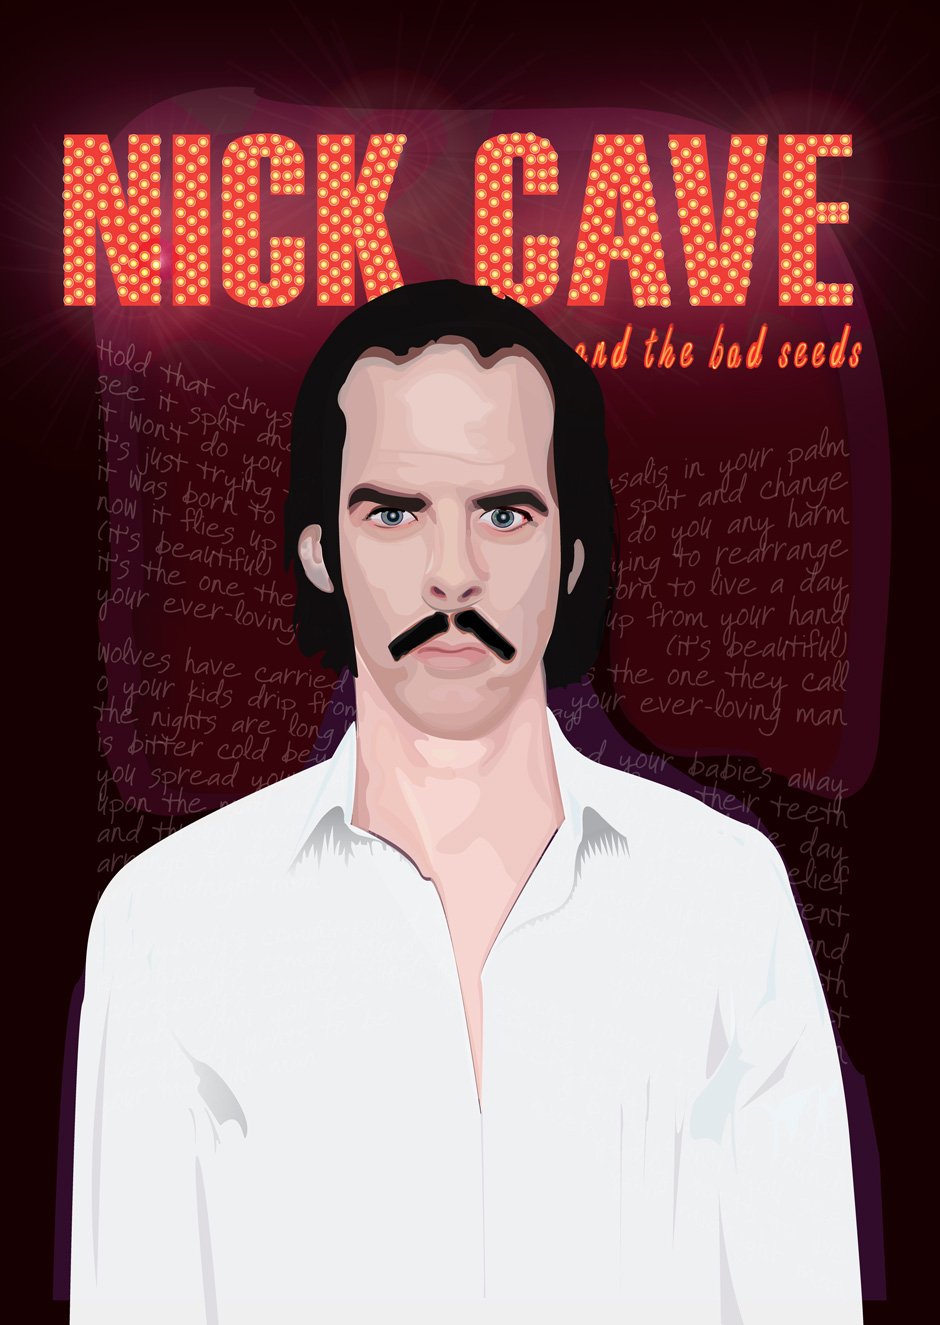 Nick Cave Fan Art from designer Tim Van Martin